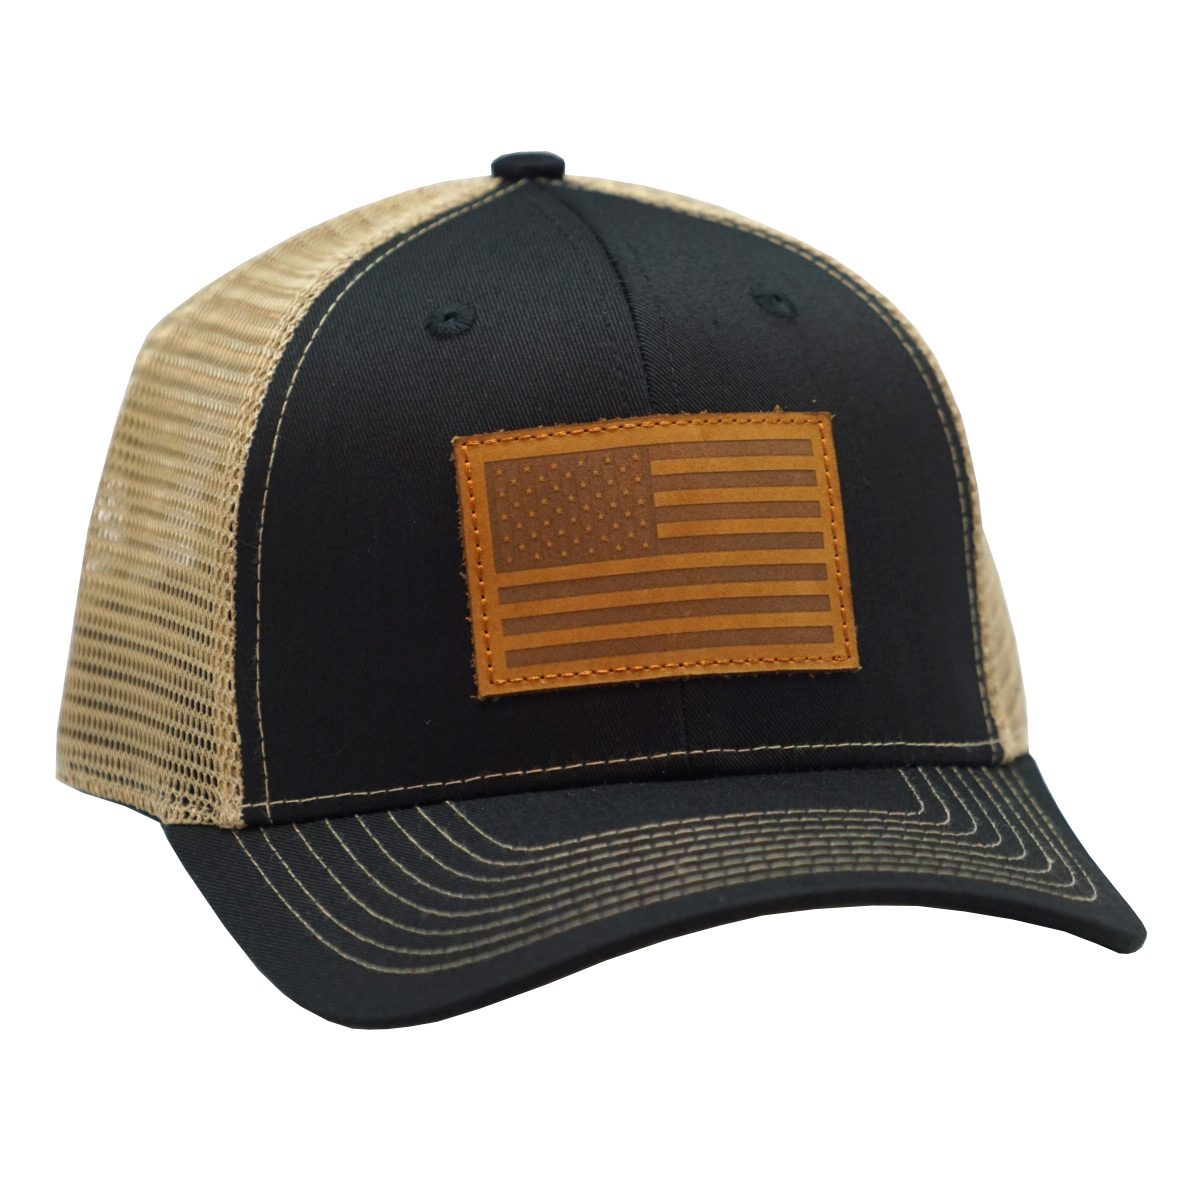 American Flag Leather Patch Black/Tan